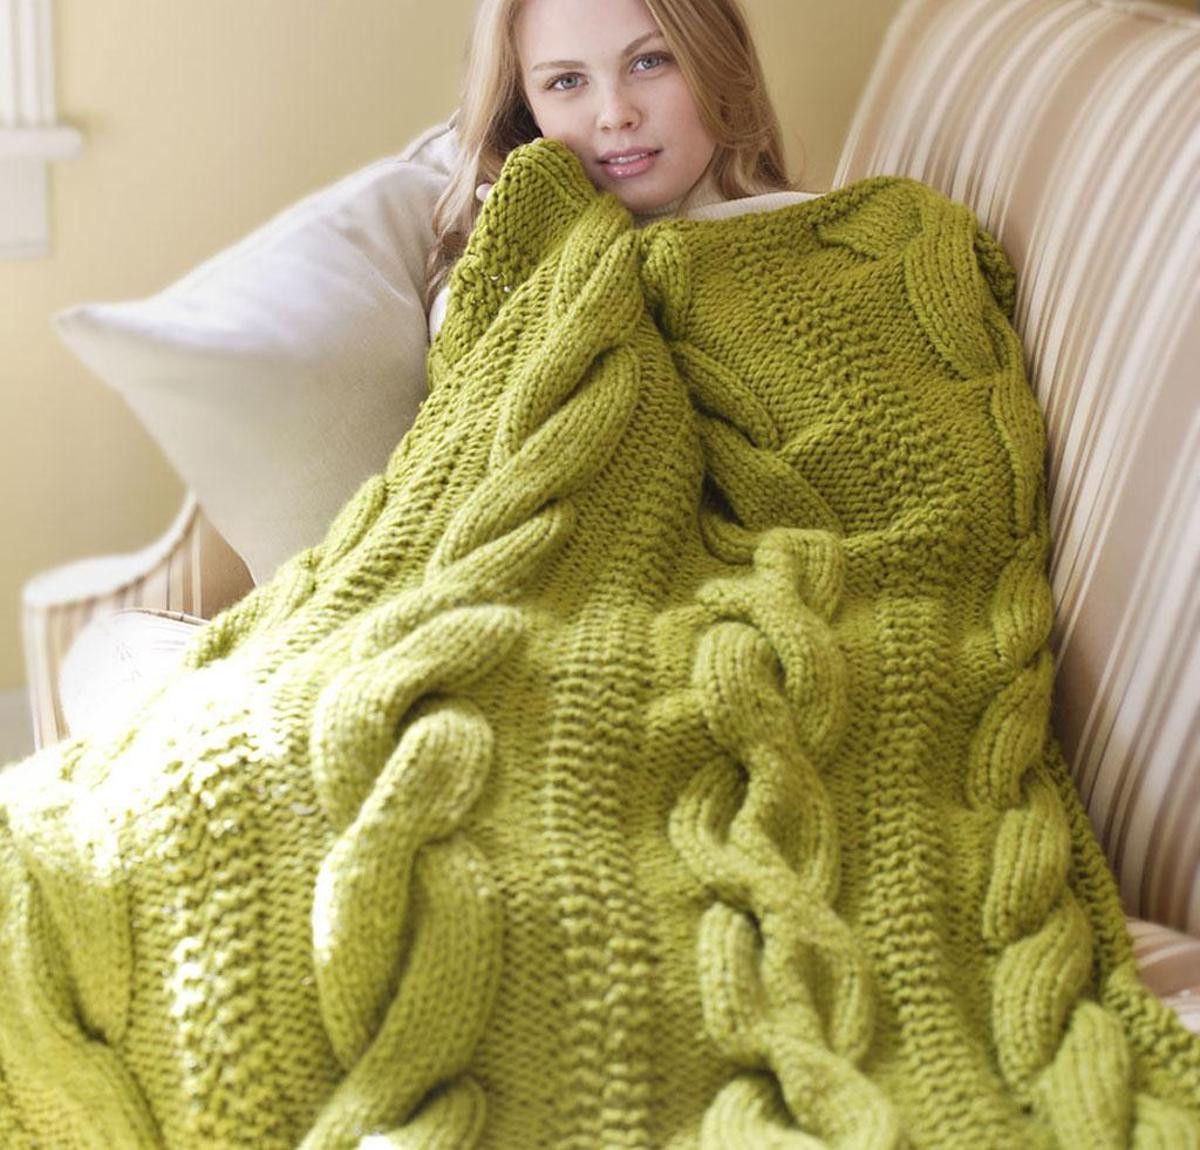 Best Of Cable fort Throw Blanket Knitting Kit Knit Throw Blanket Pattern Of Marvelous 46 Pictures Knit Throw Blanket Pattern